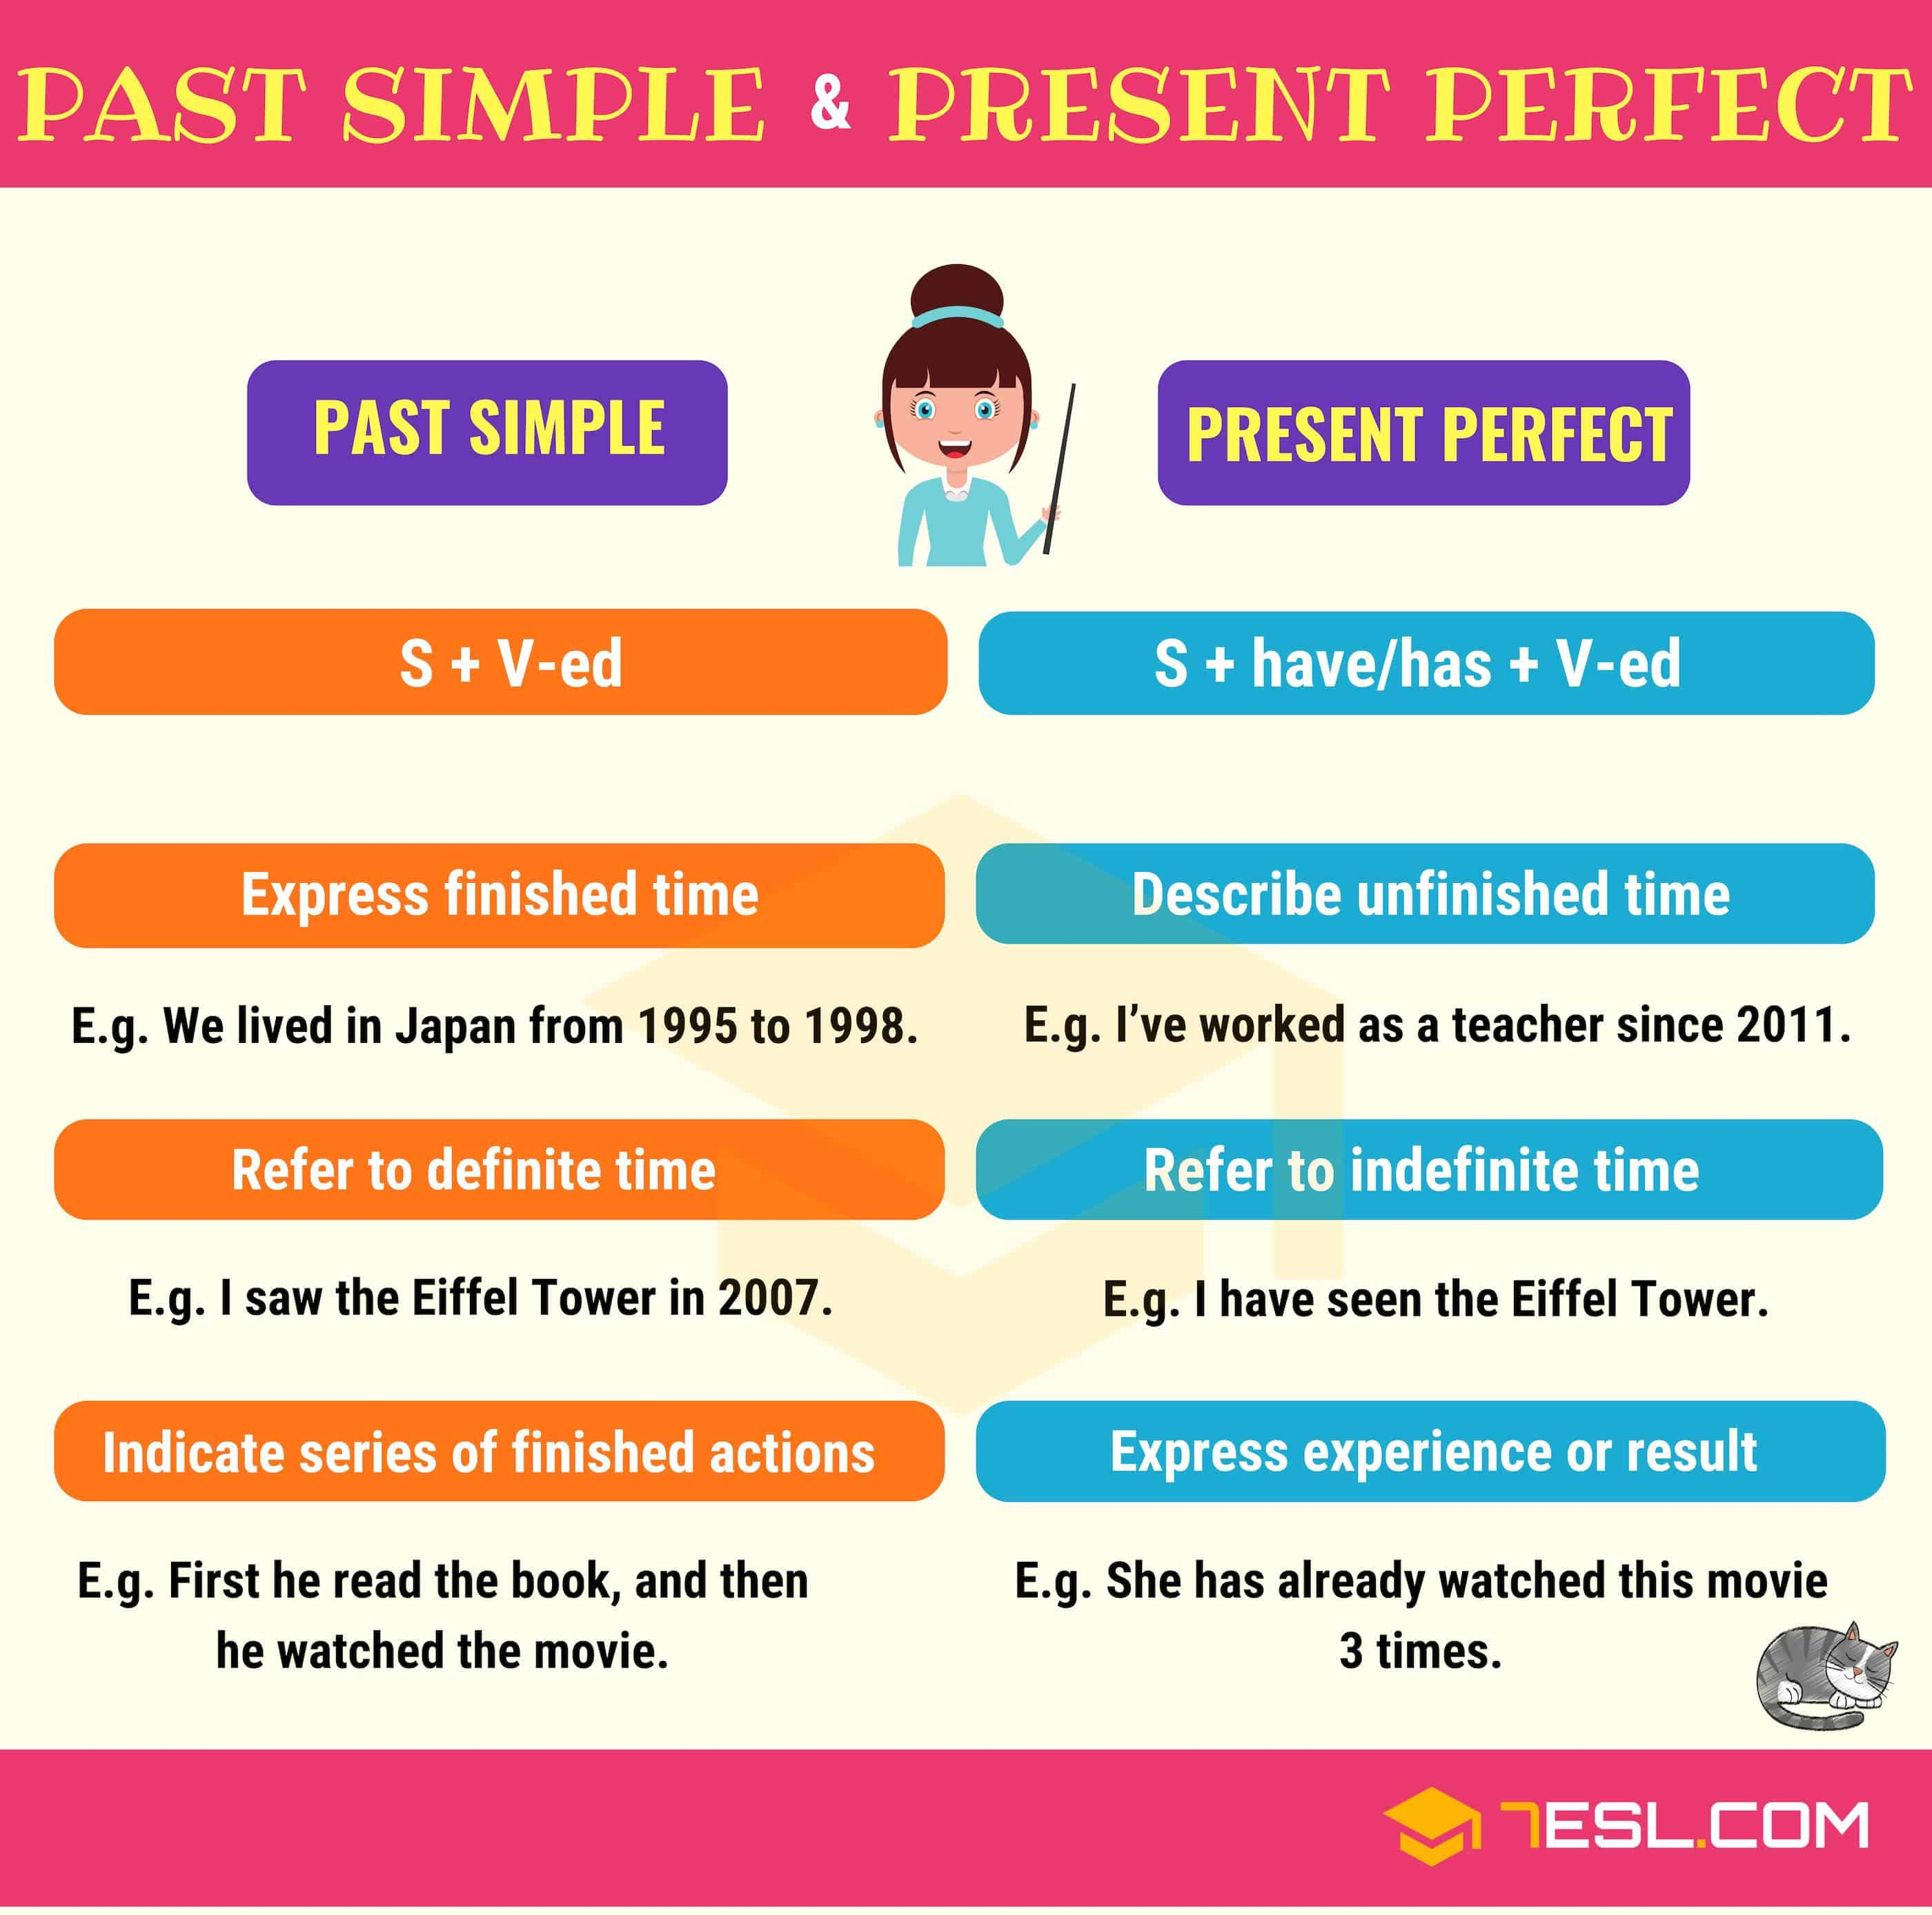 Present Perfect vs Past Simple! Learn the difference between Past Simple and Present Perfect Tense in English with useful grammar rules and example sentences.